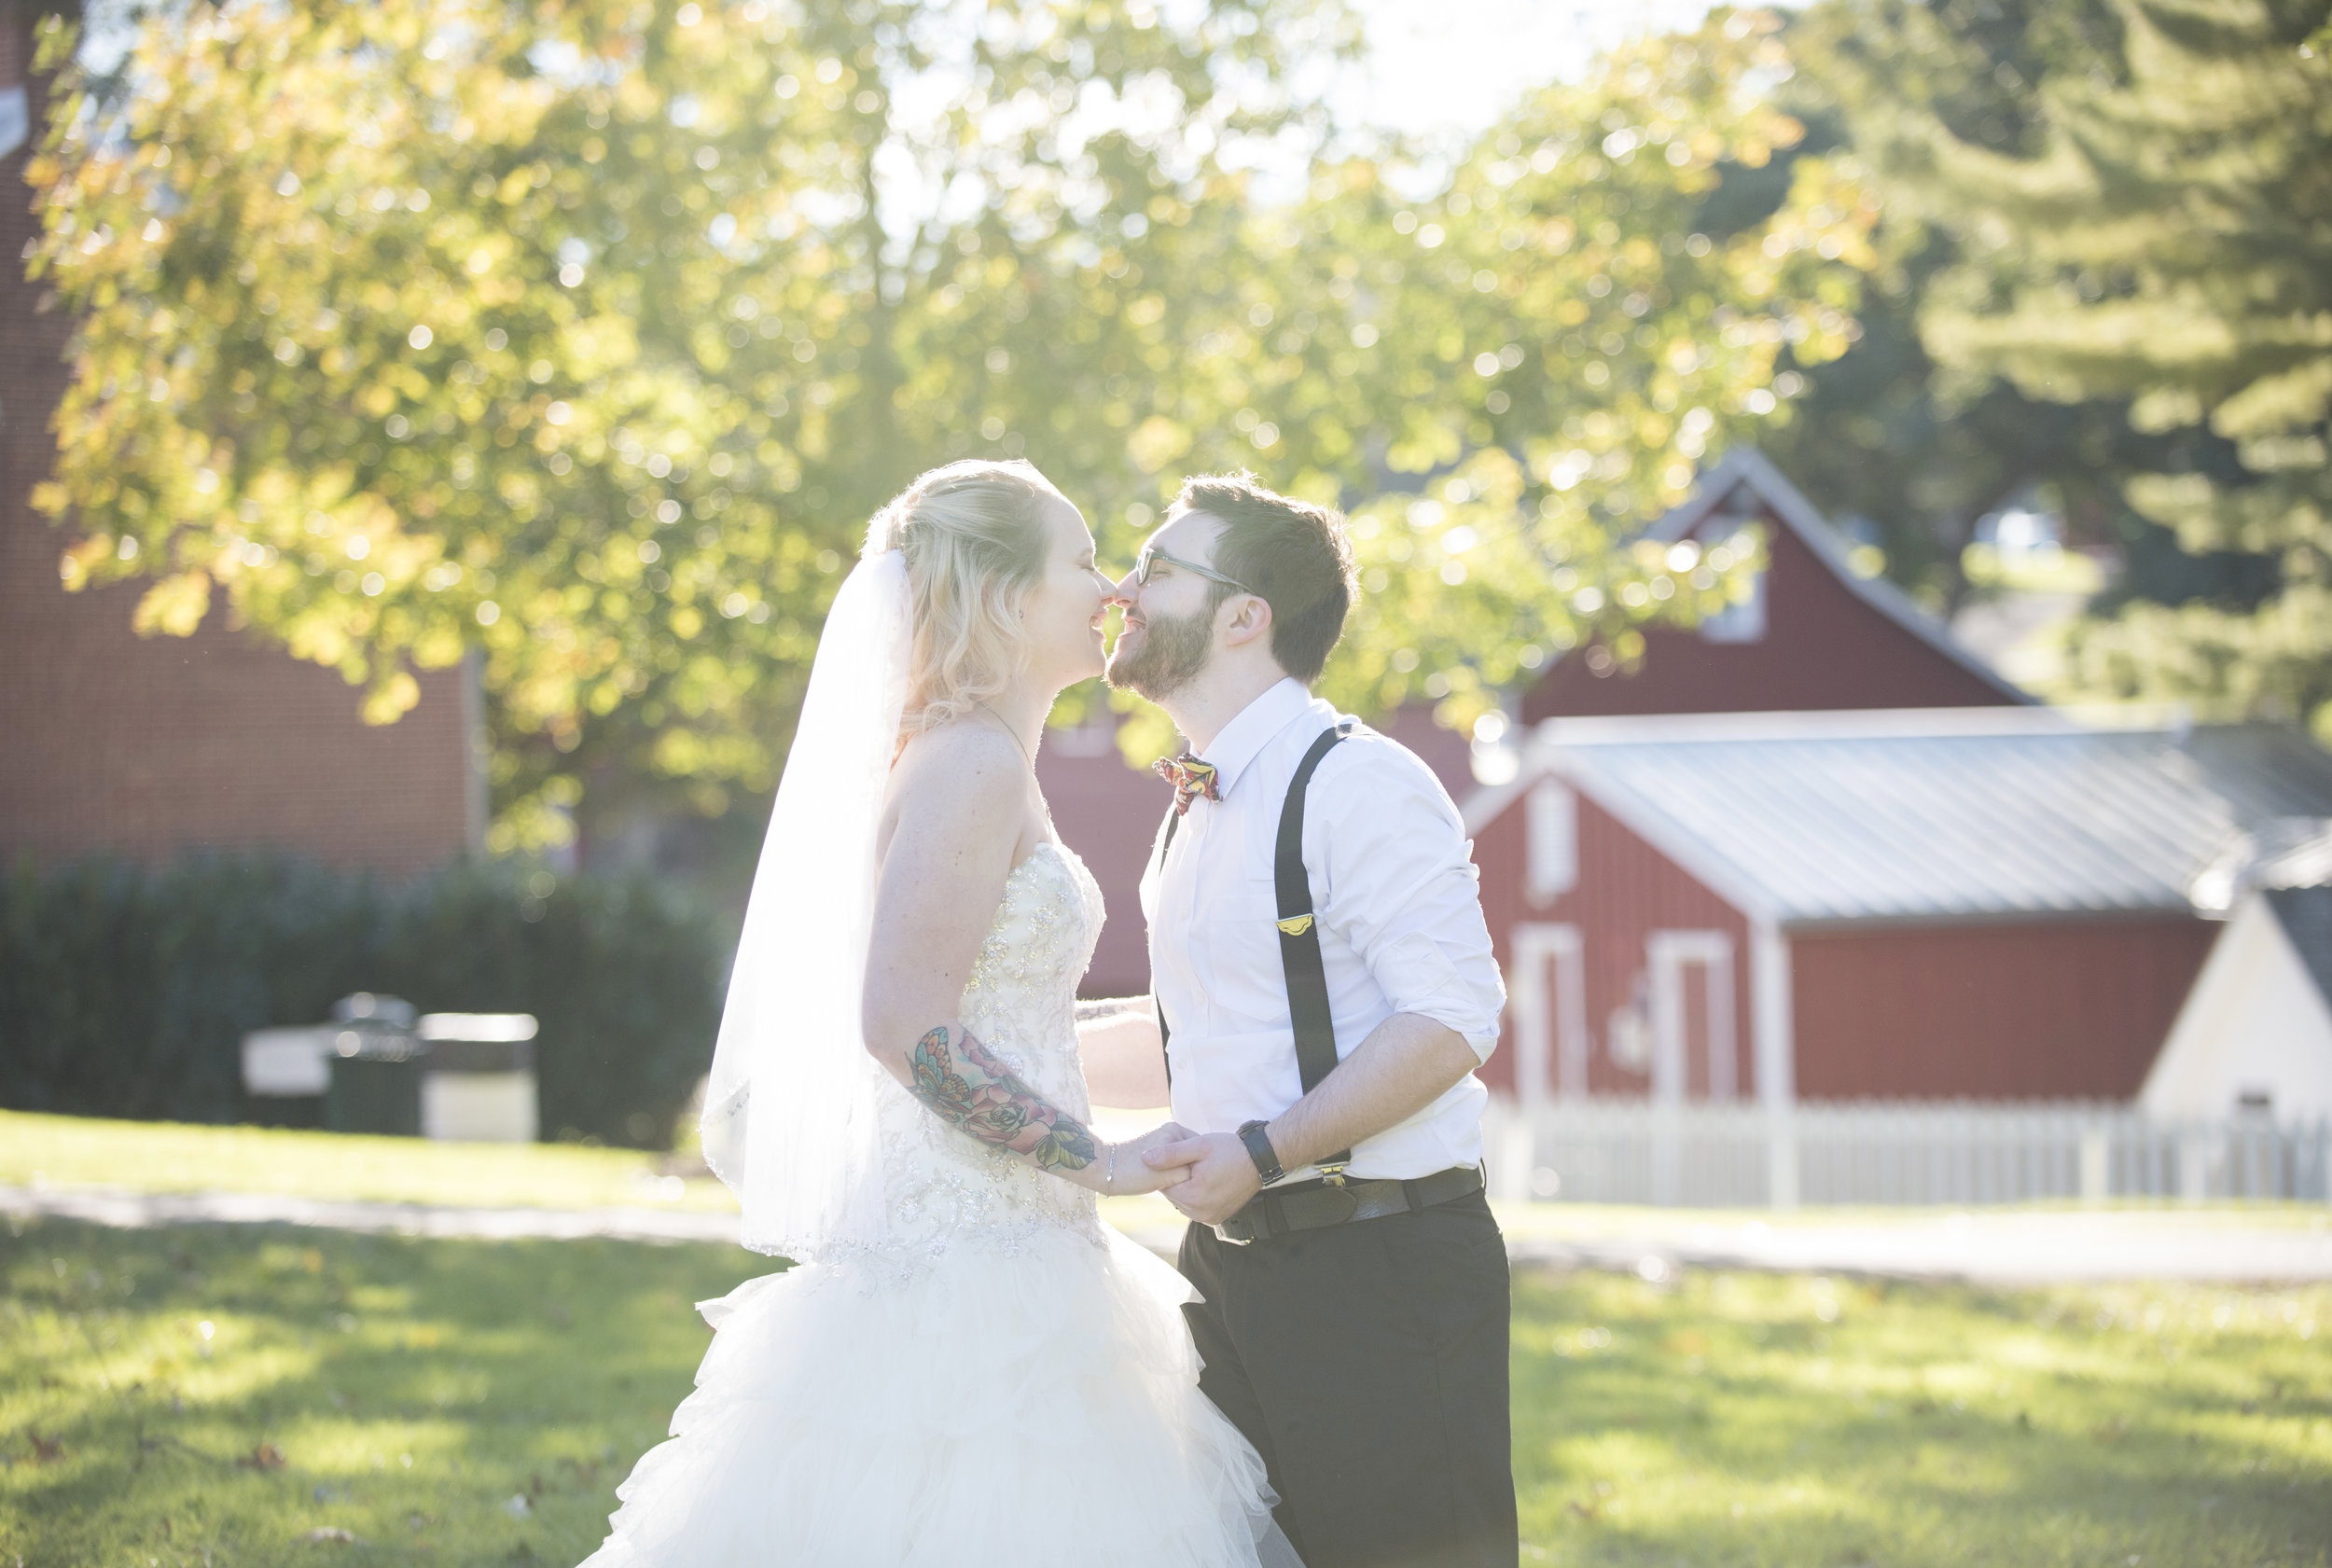 Boswick Photography serves the New Jersey area in wedding photography.